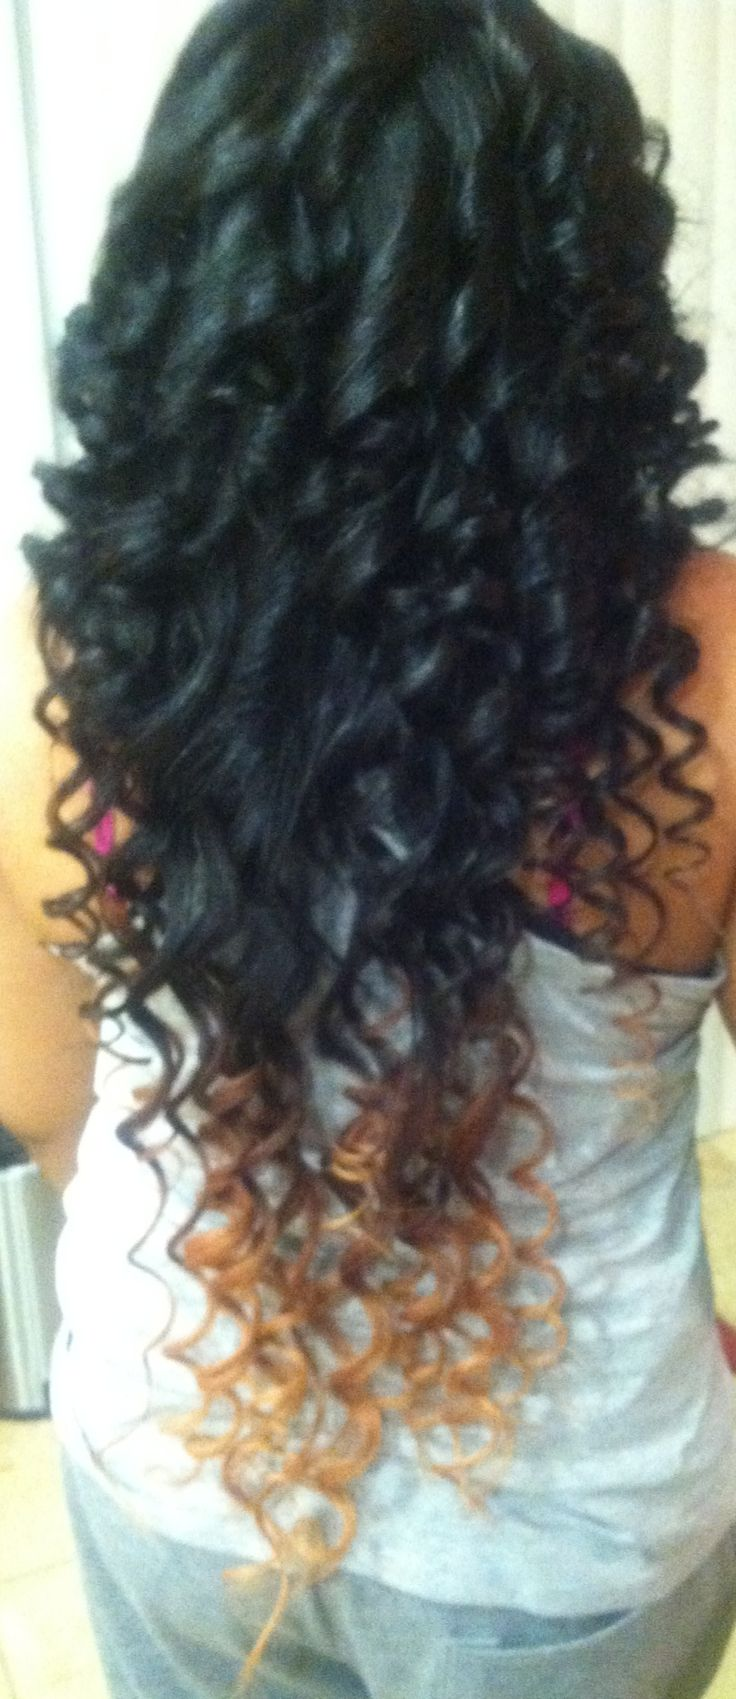 Ombr 233 With Wand Curls Hairstyles ♡ Pinterest